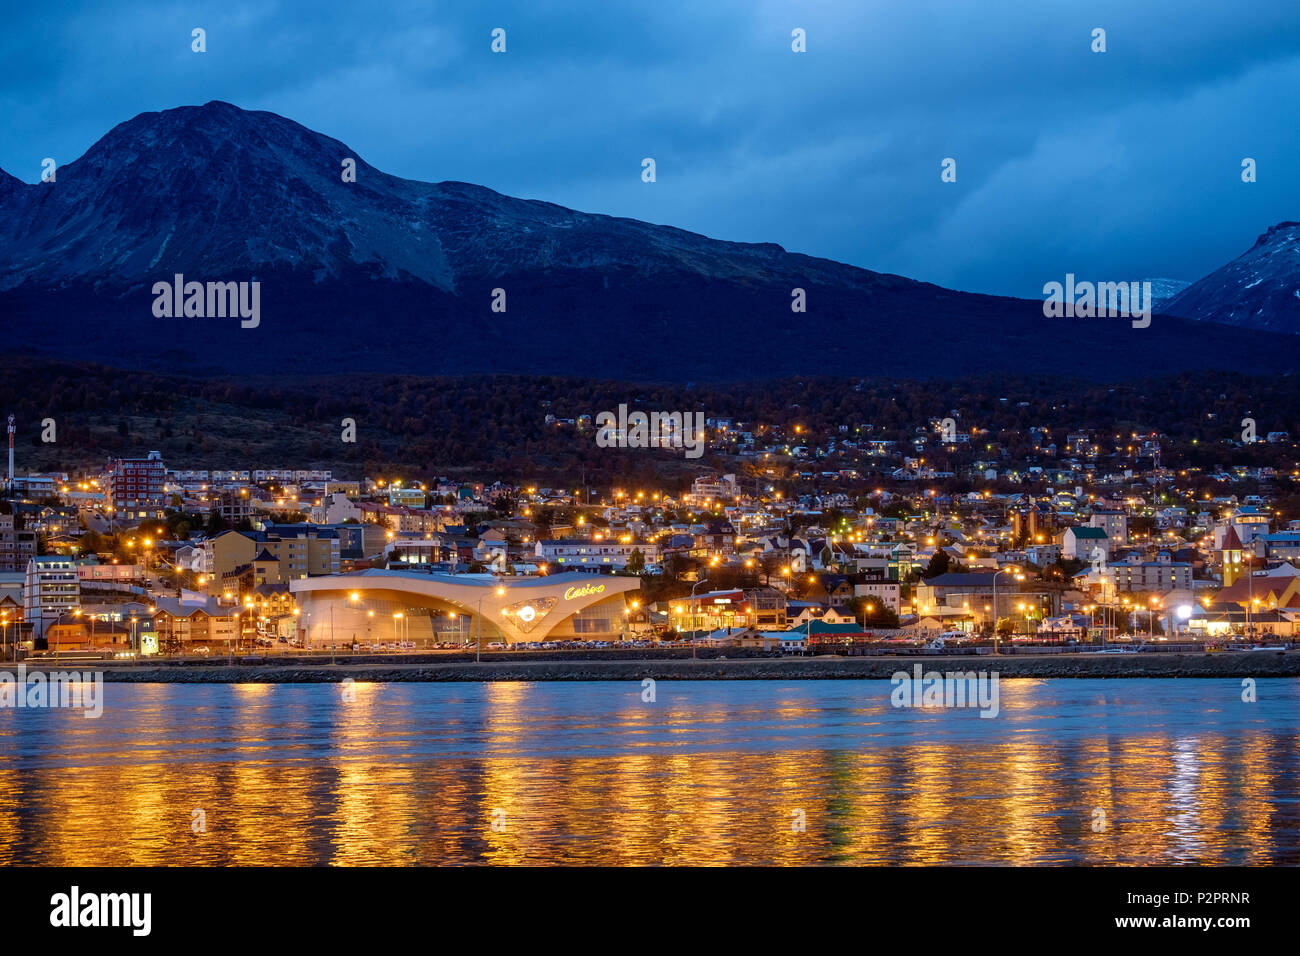 The 'Bahía Encerrada' reflects the city lights of Ushuaia. Close to the bay lies the casino. Higher up the hill, illegal housing creates a forest gap. Stock Photo